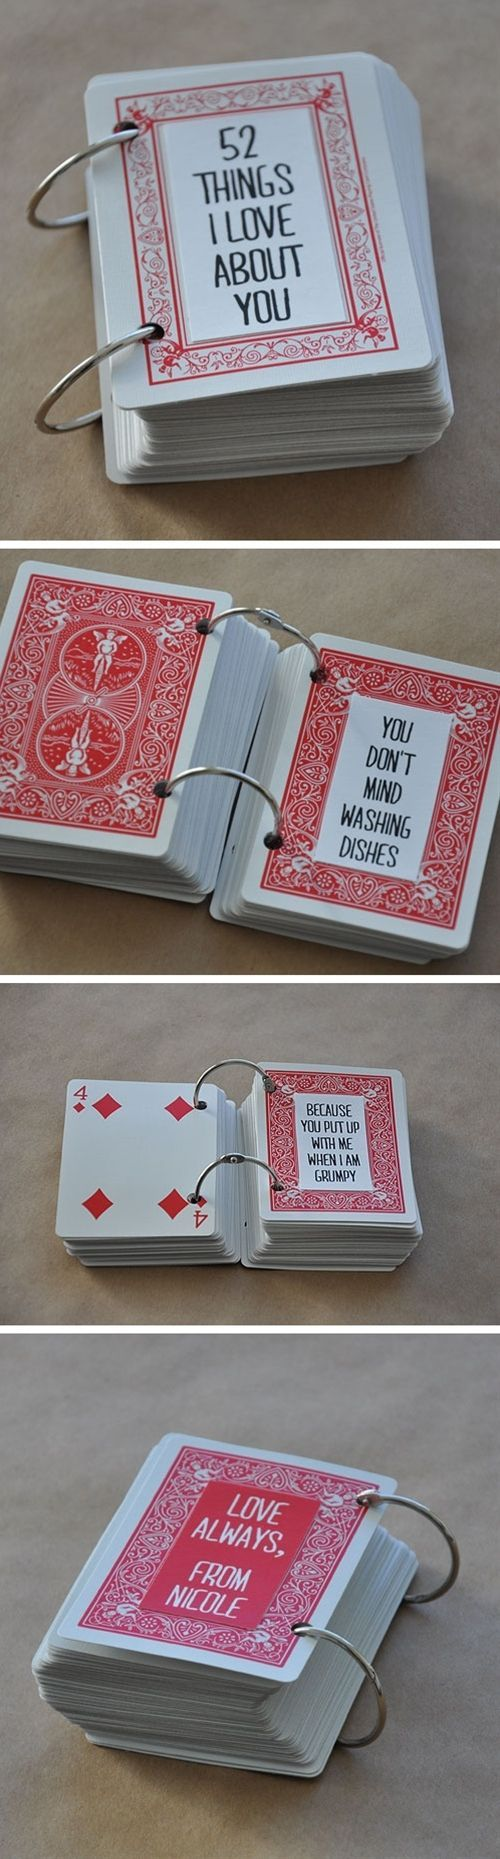 52 Things... - Click image to find more DIY & Crafts Pinterest pins